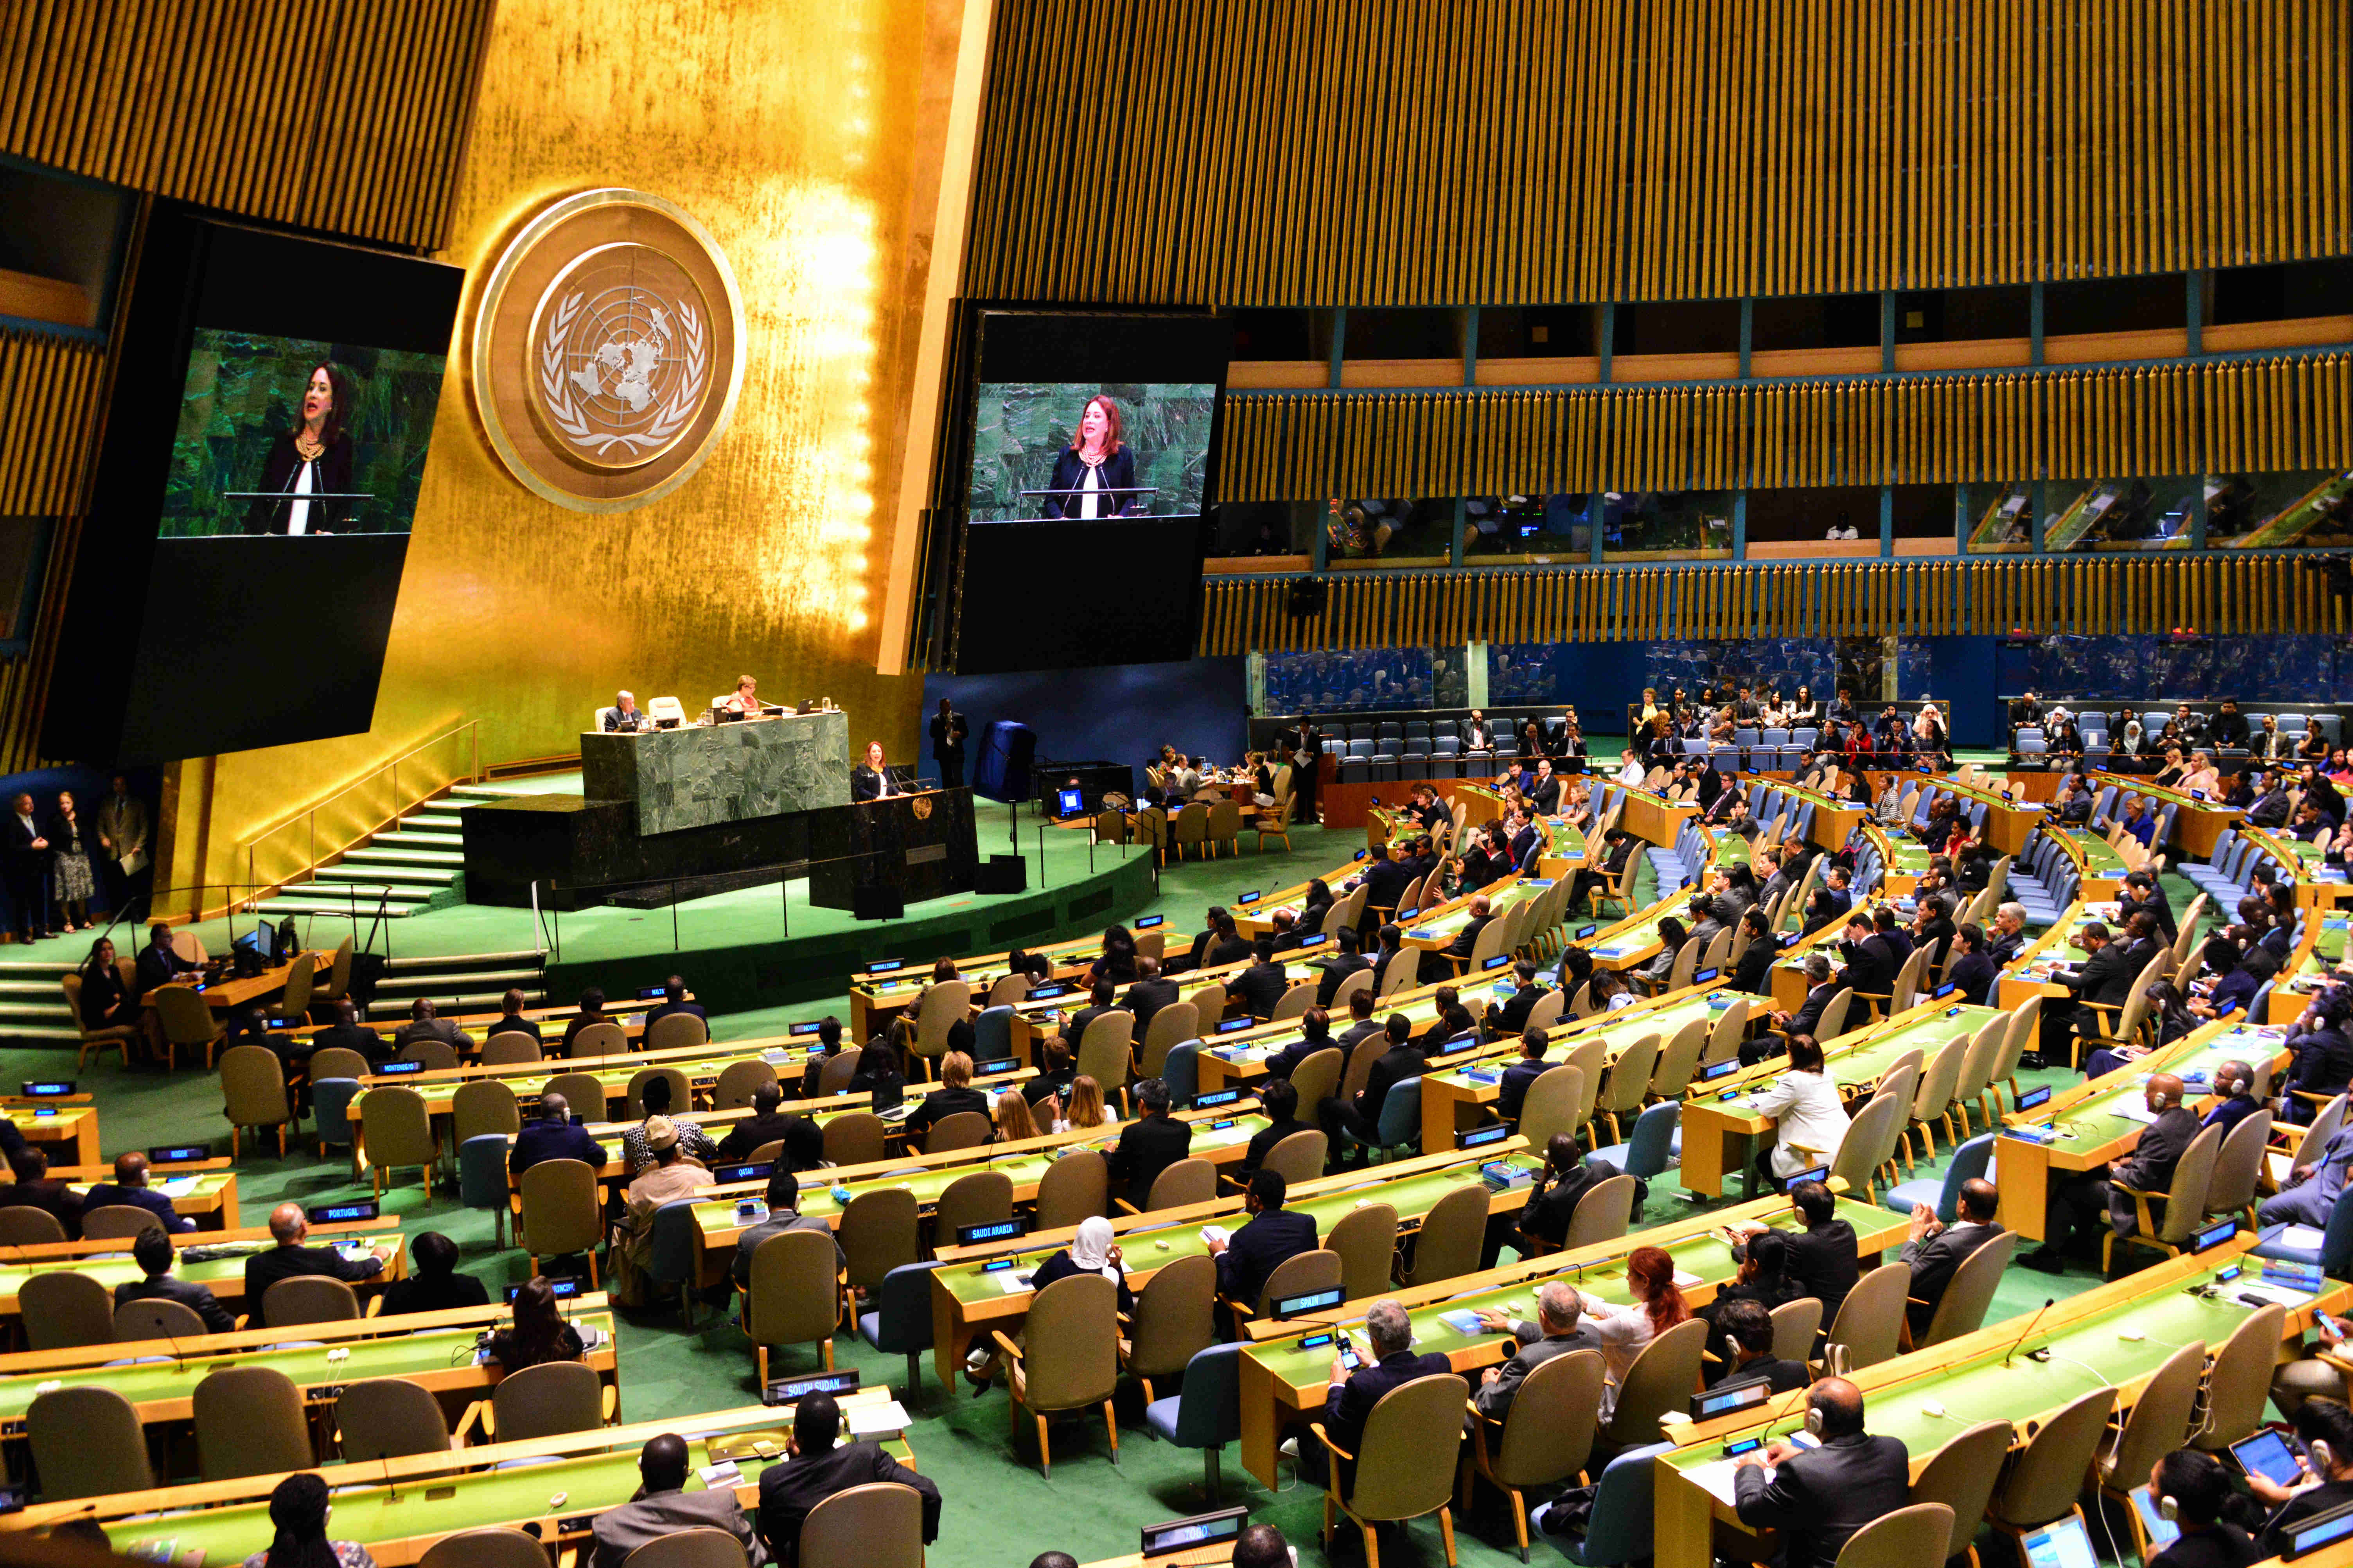 The 73rd session of the General Assembly kicks off at the UN Headquarters in New York